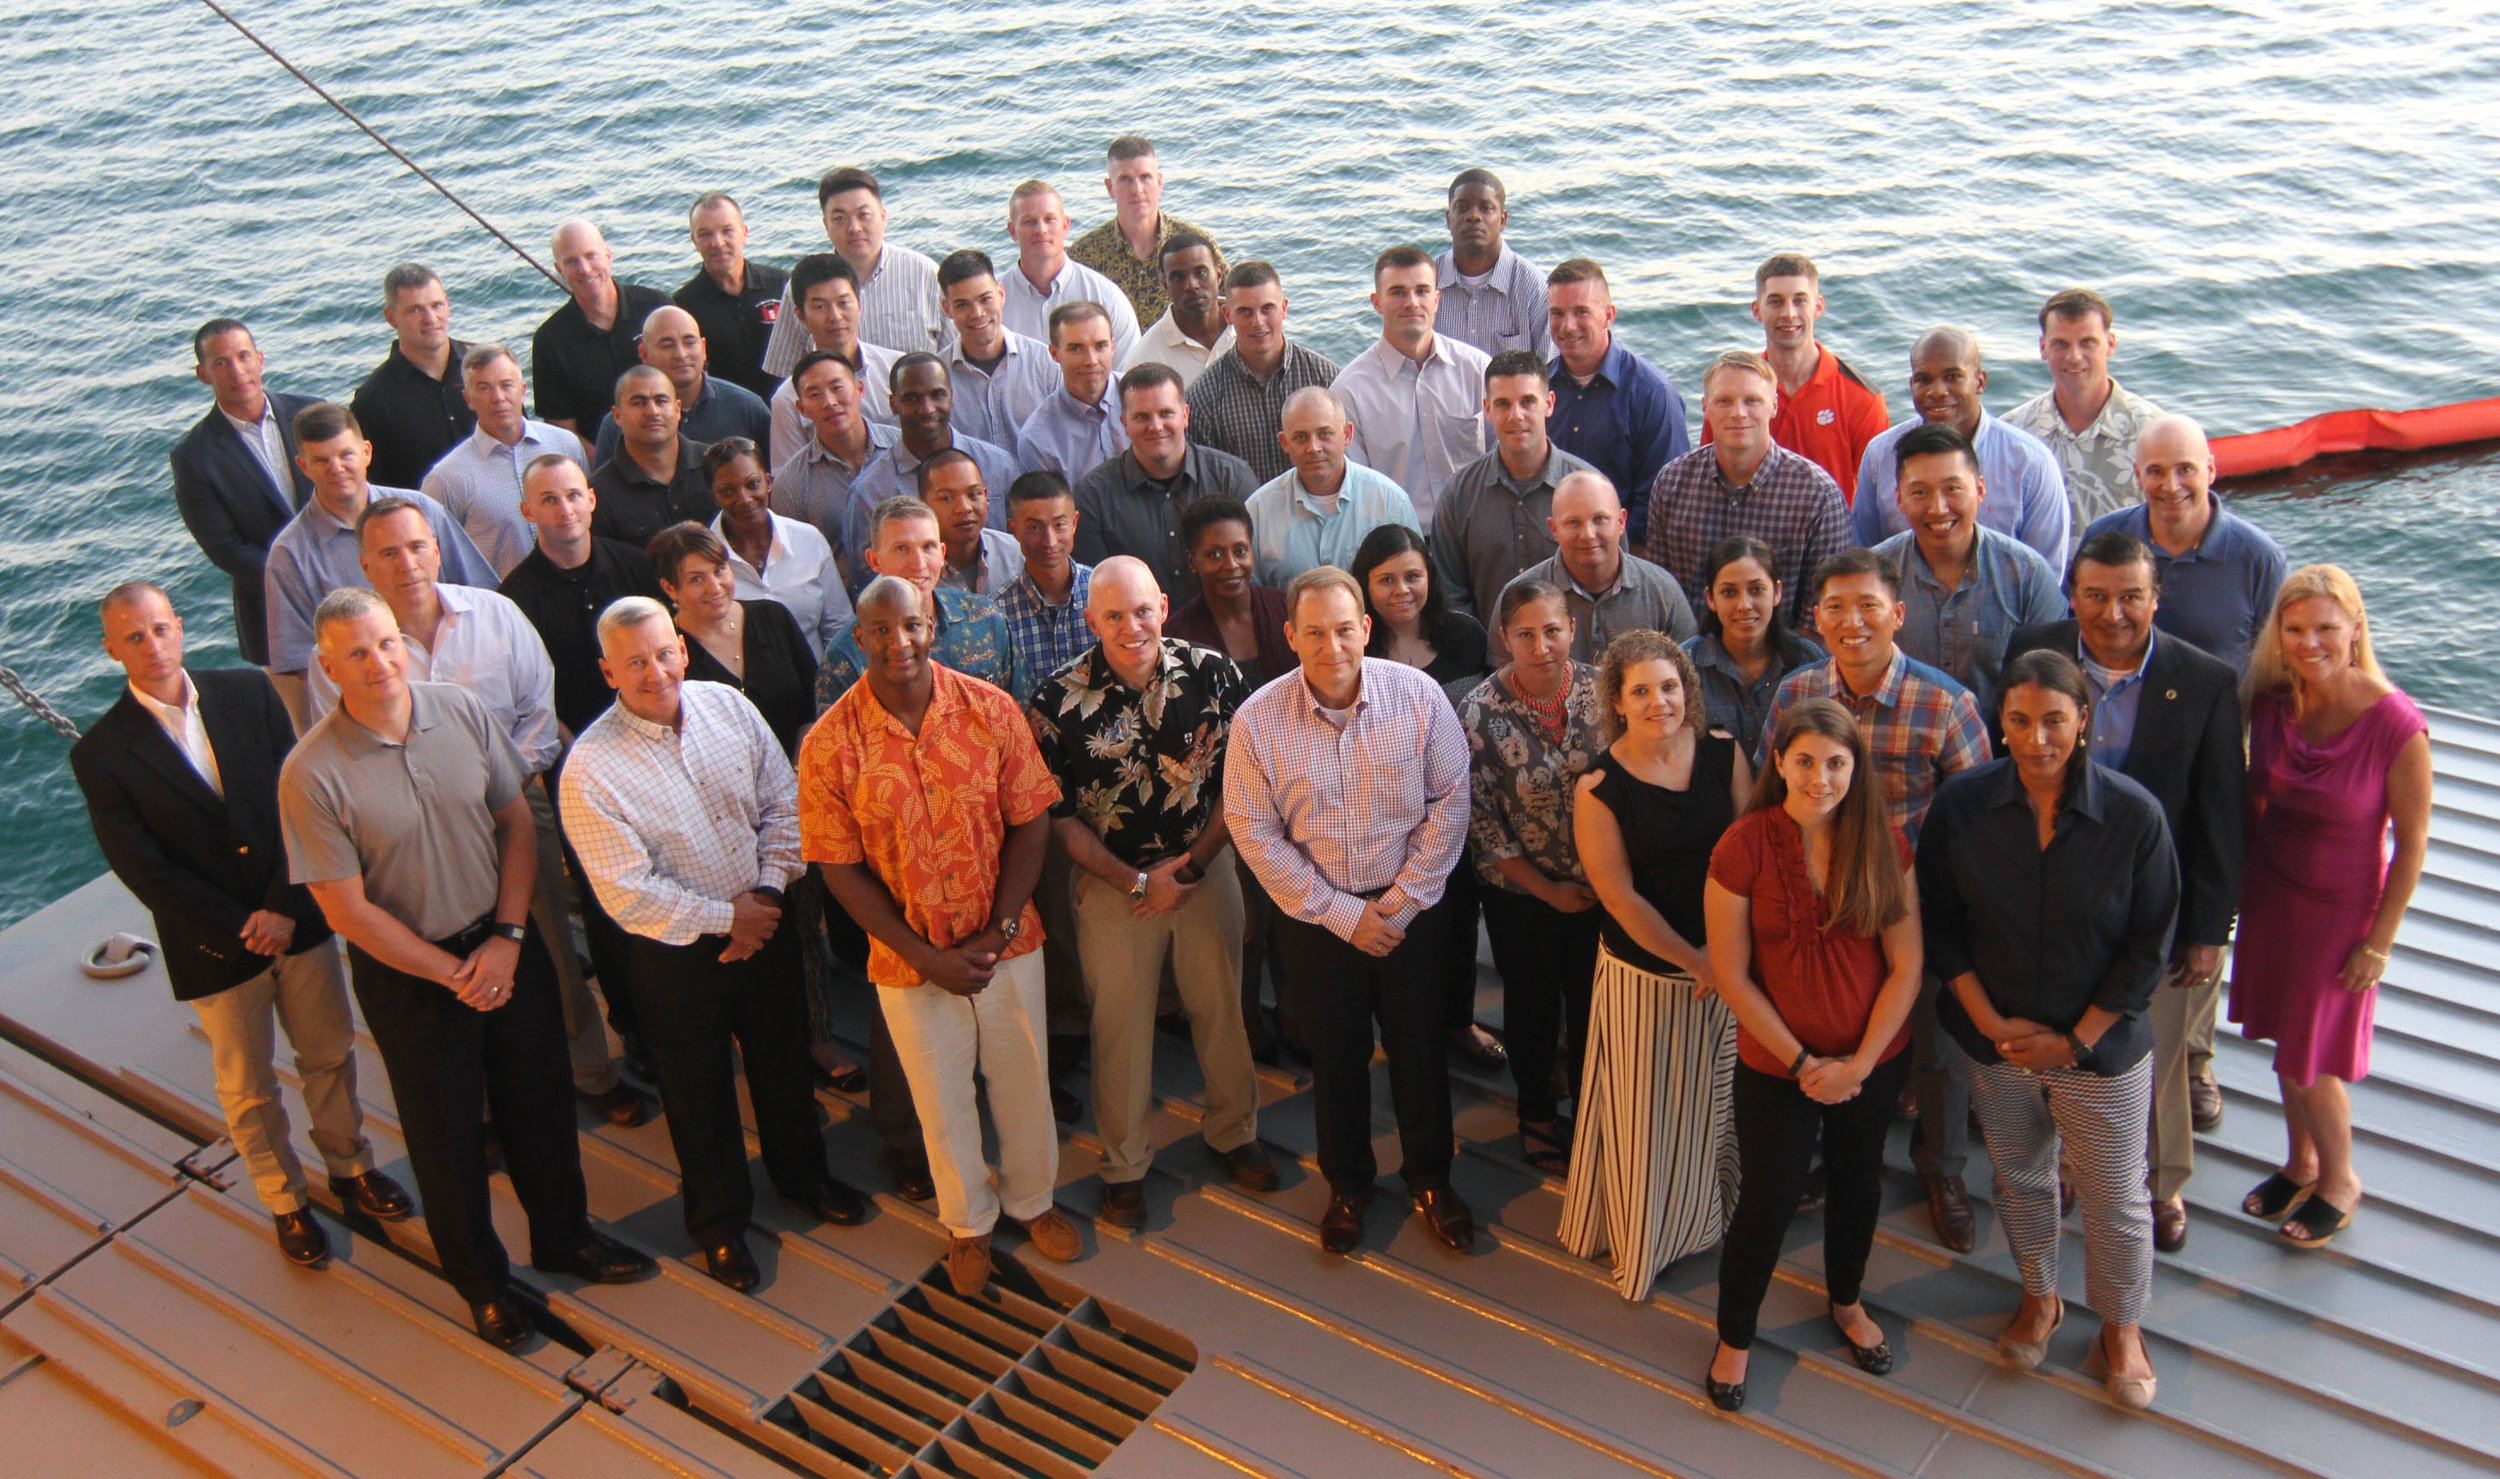 Participants in the 8th Theater Sustainment Command-hosted Young Alaka'i leader development program, 2016.(Sgt. 1st Class Nicole Howell/U.S. Army Photo)